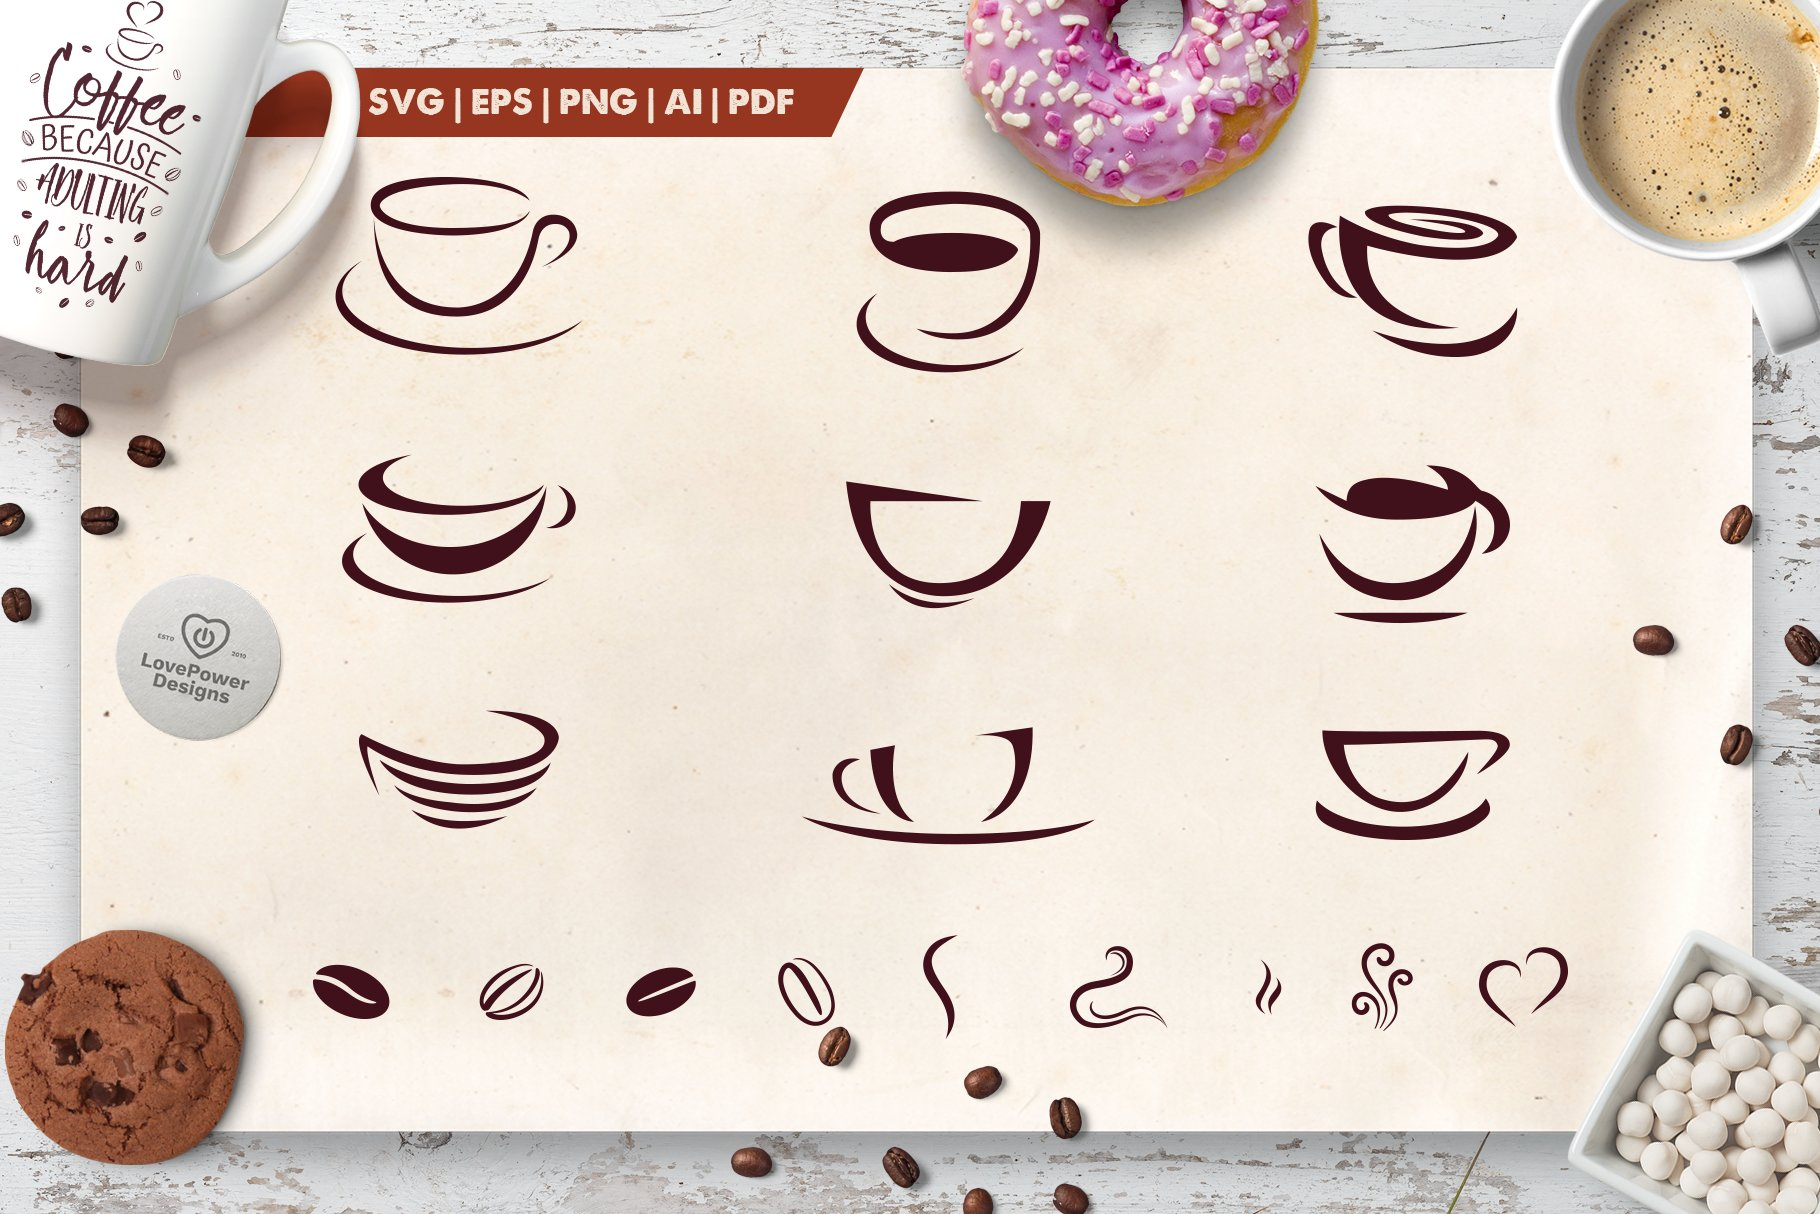 Coffee Cups For Logos Unique Illustrator Add Ons Creative Market